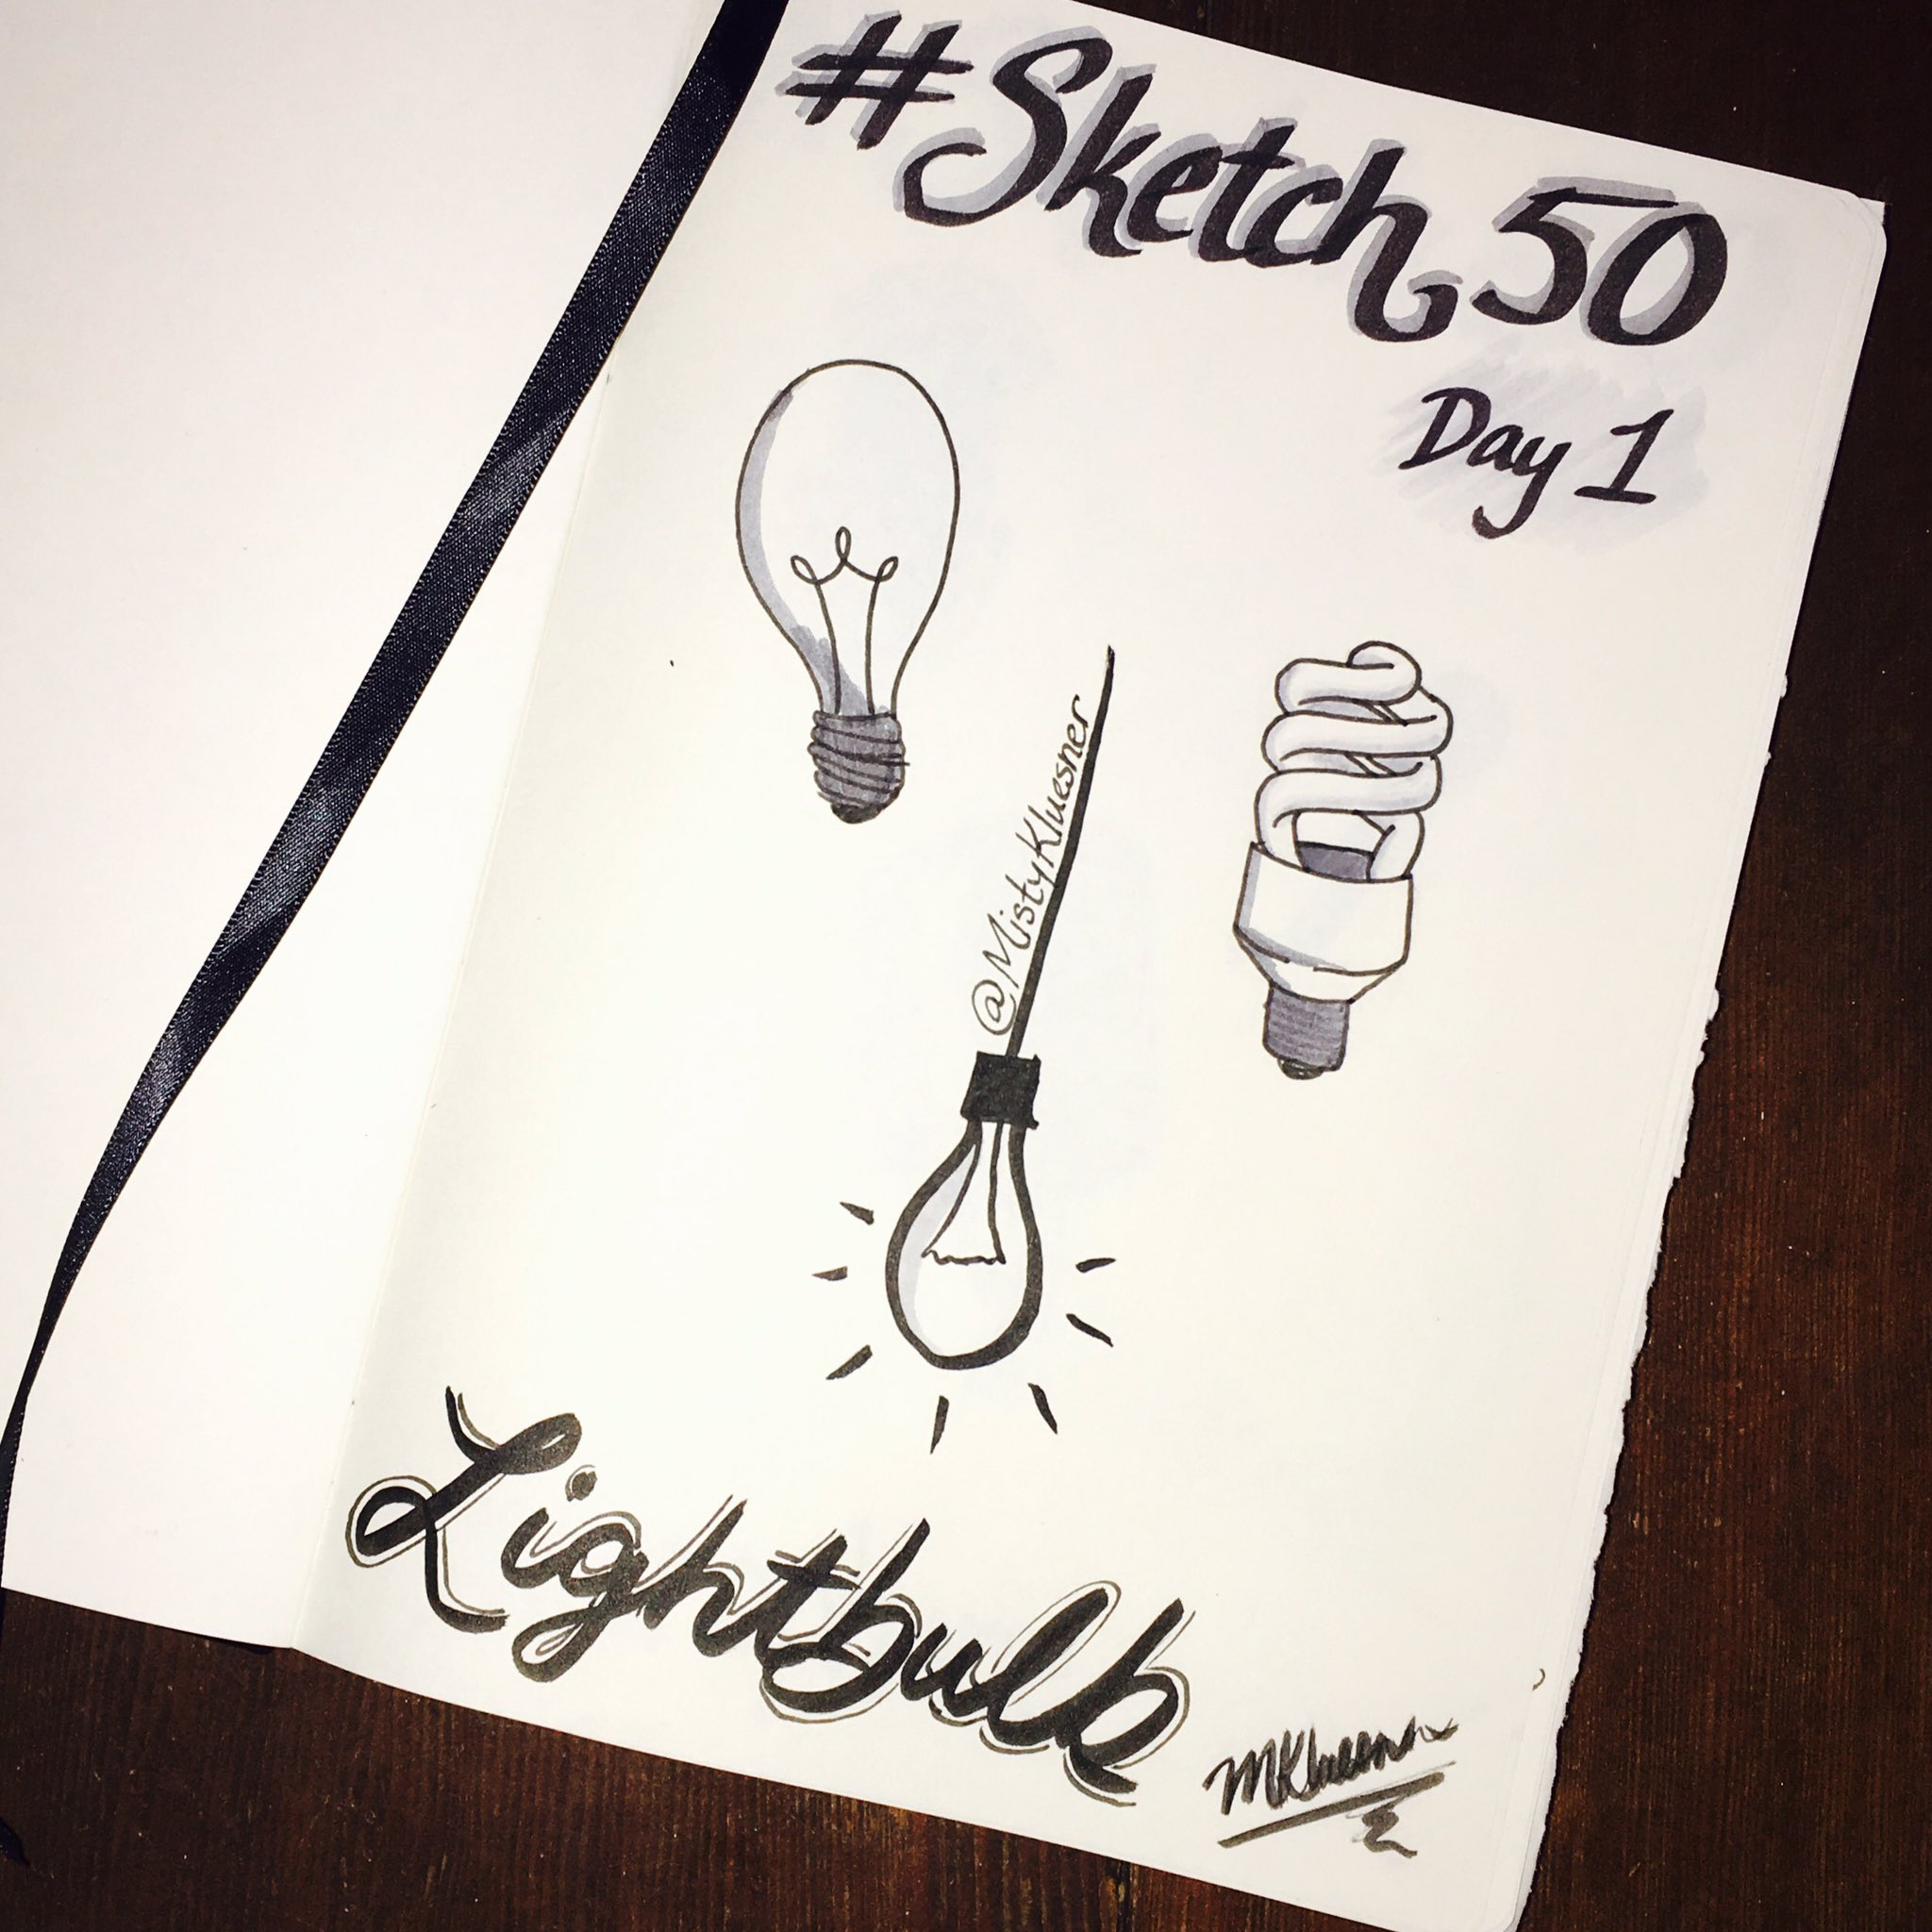 Got a new book & pens for #sketch50 so decided to restart w/ Day 1: lightbulb. Personal challenge: work in grayscale only. #GrowthMindset https://t.co/uc4EqCJSKr